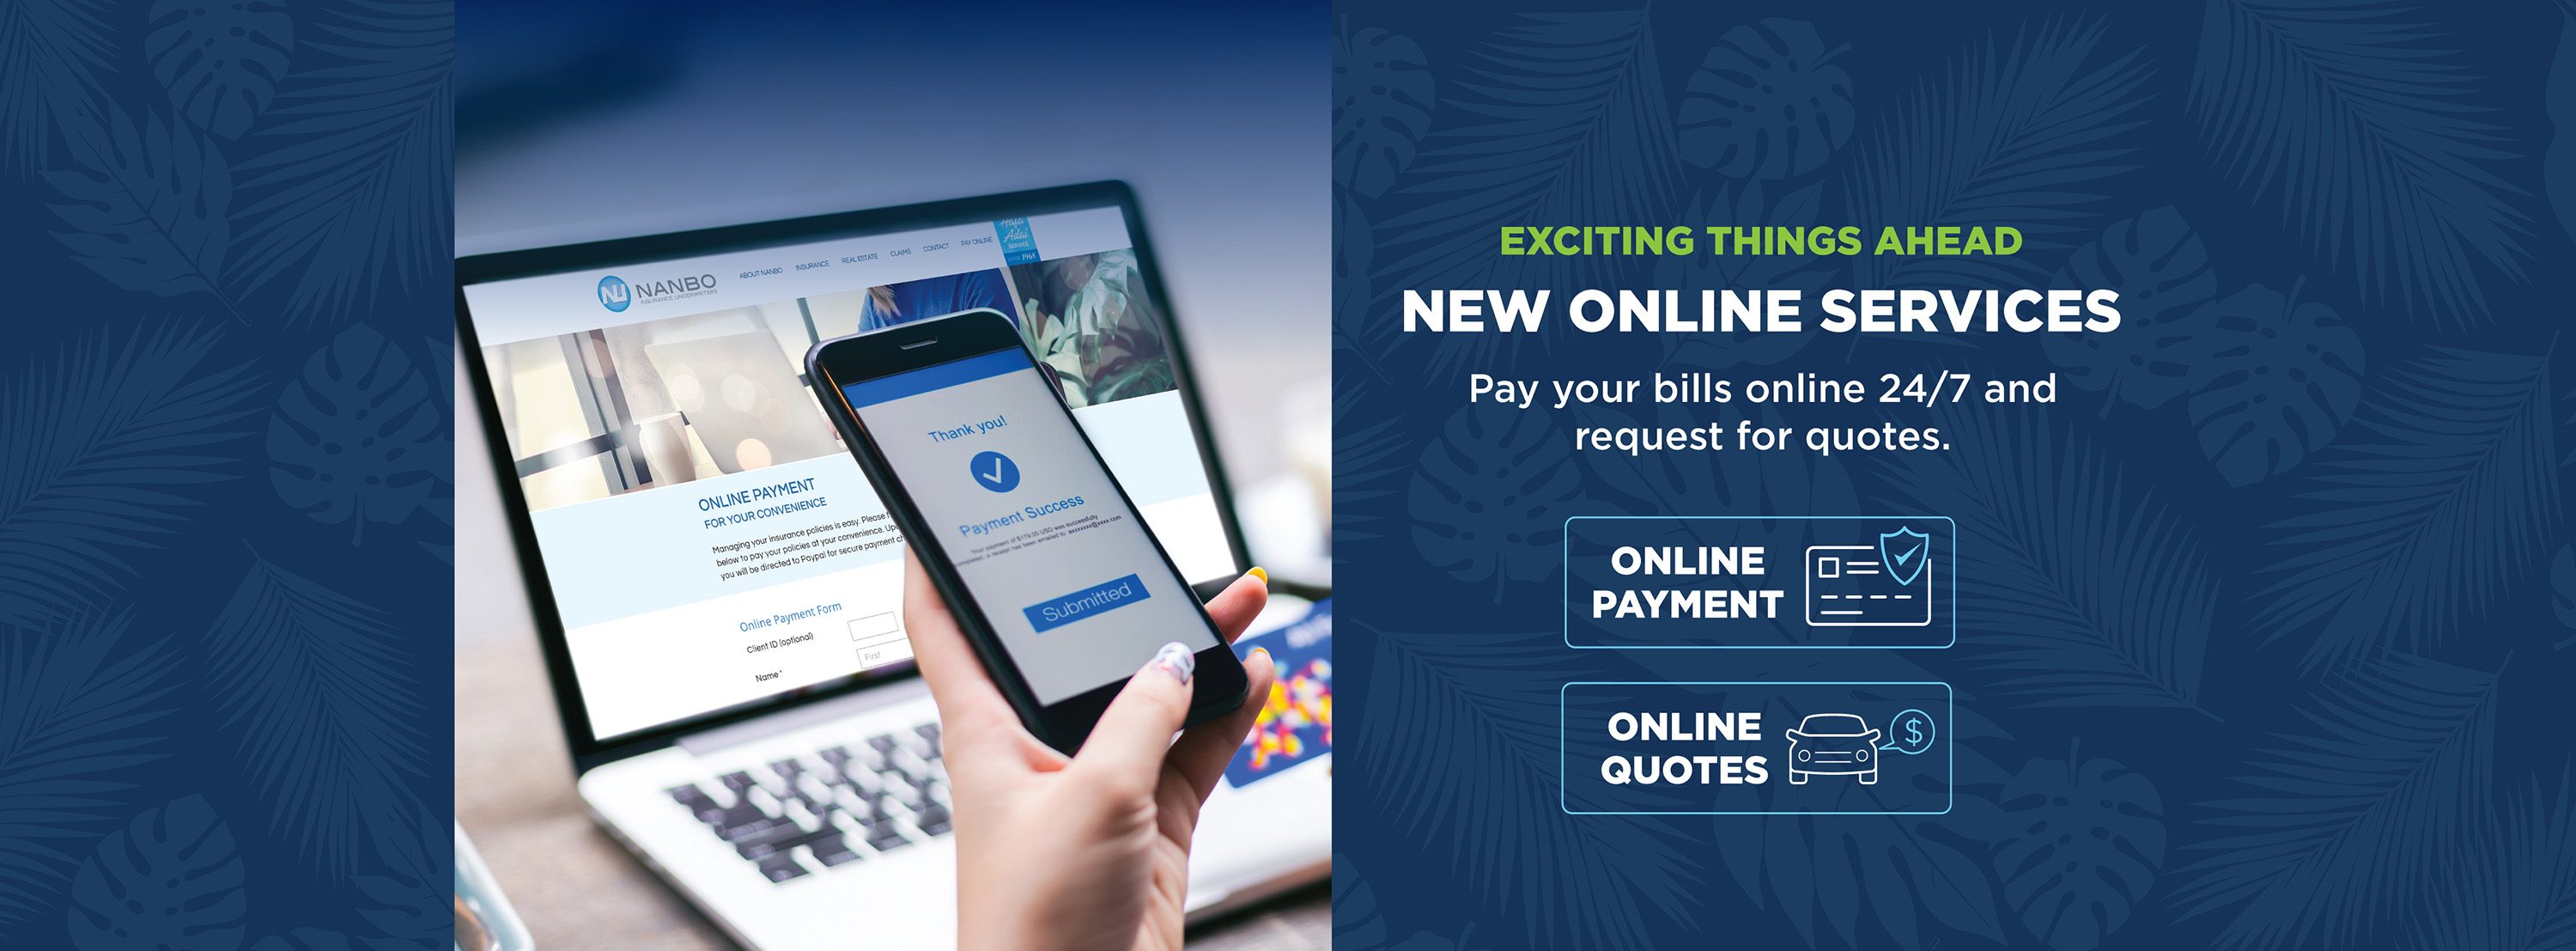 Nanbo Insurance - Online Payment